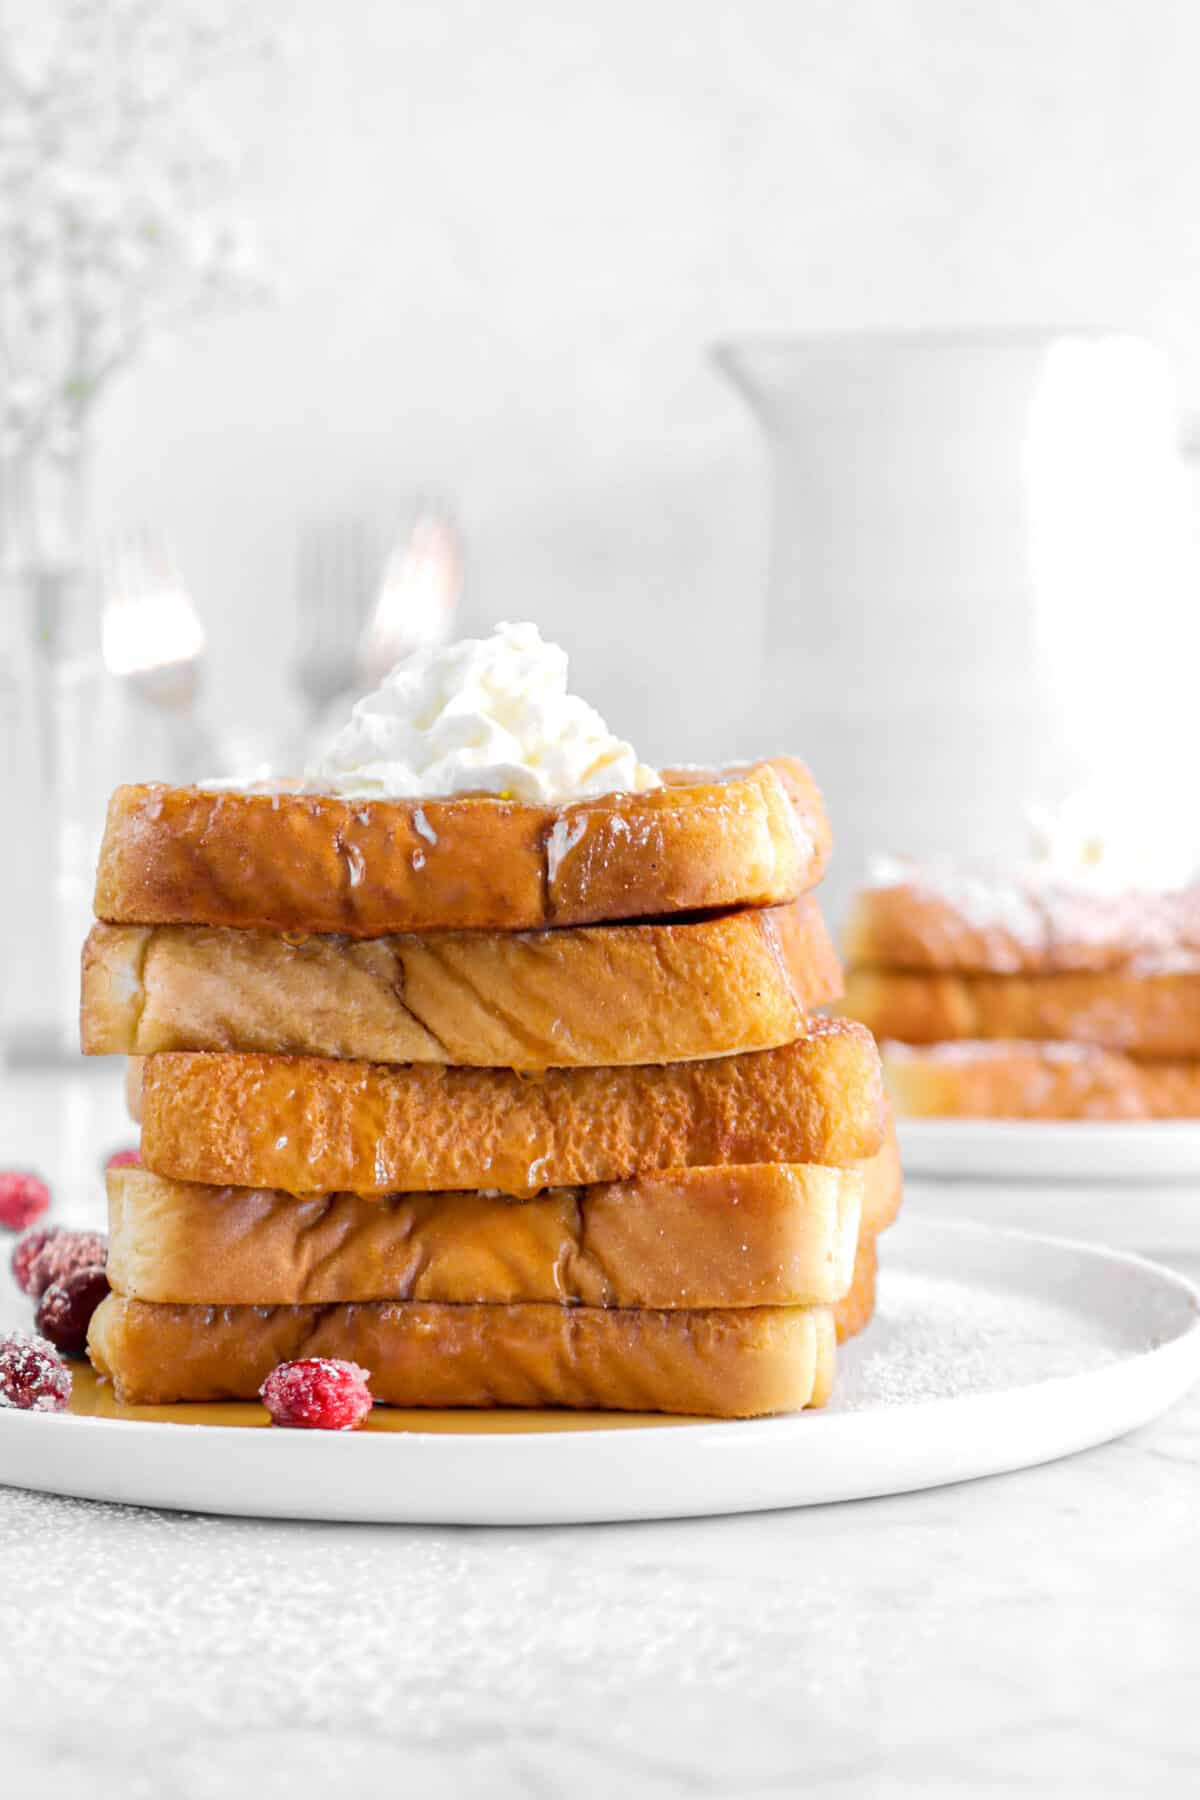 stacked french toast on a white plate with cranberries and whipped cream